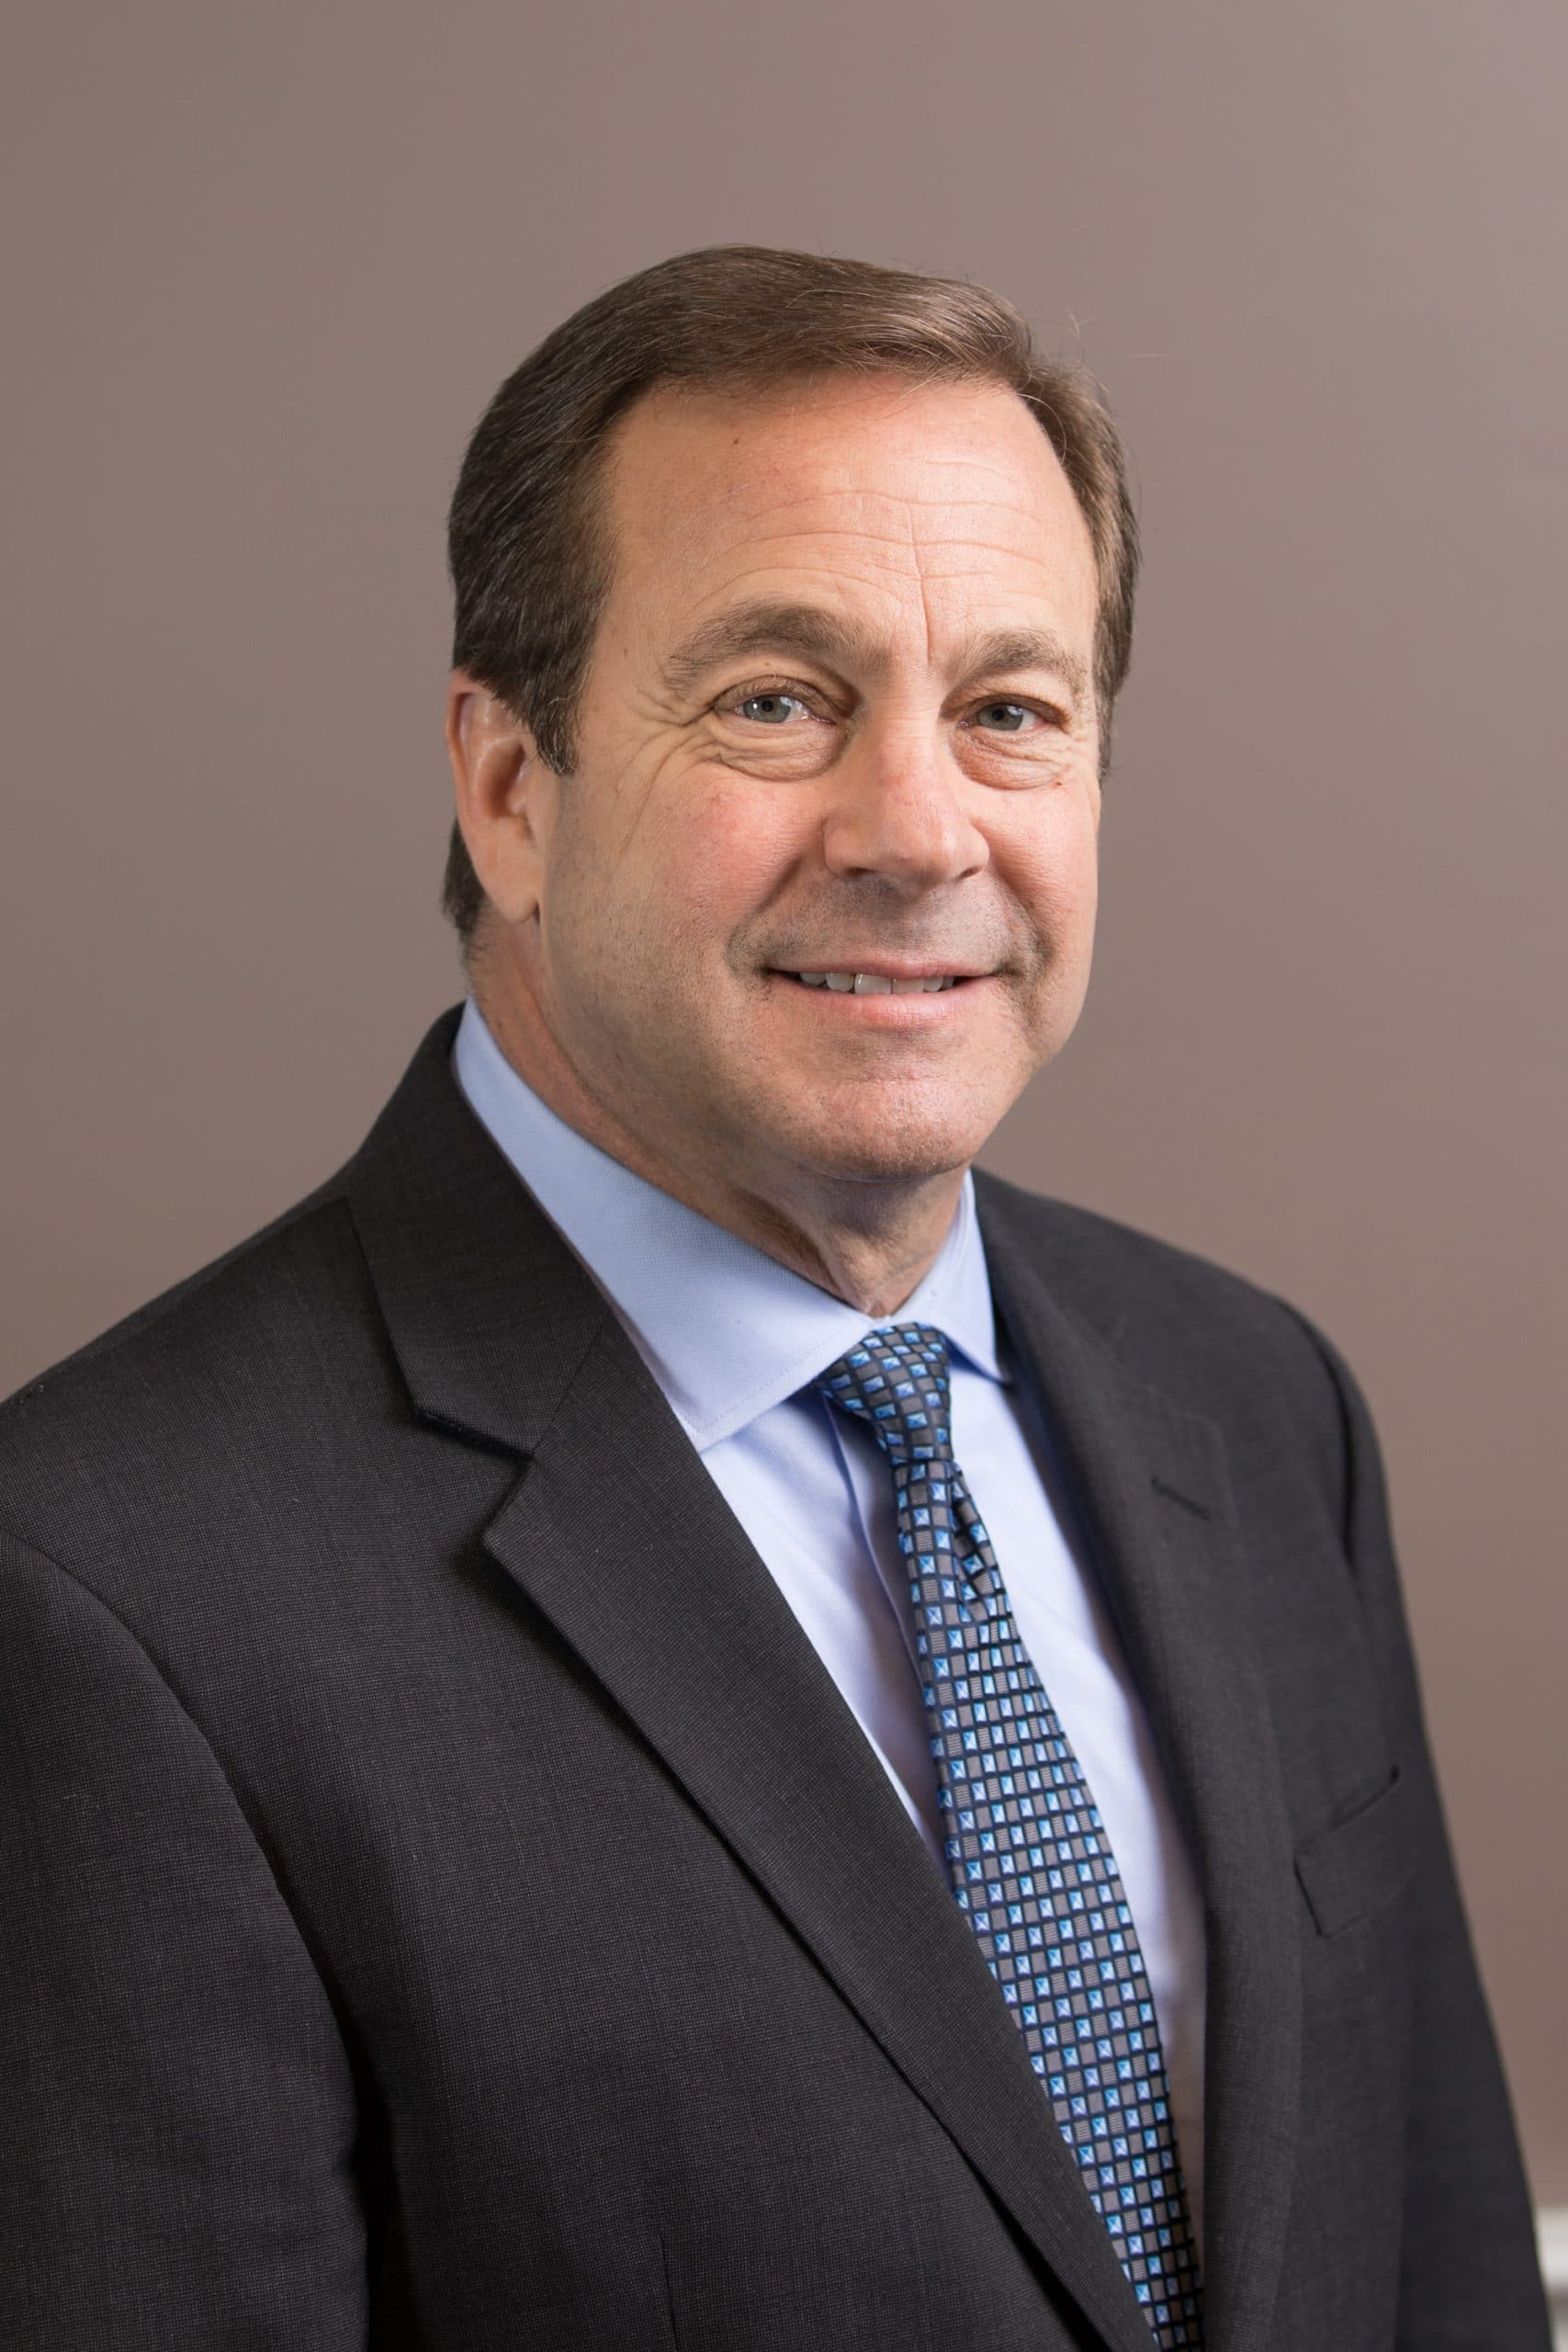 Lou Cappelli, Florio Perrucci Partner, Elected to Chair of the DVRPC Board